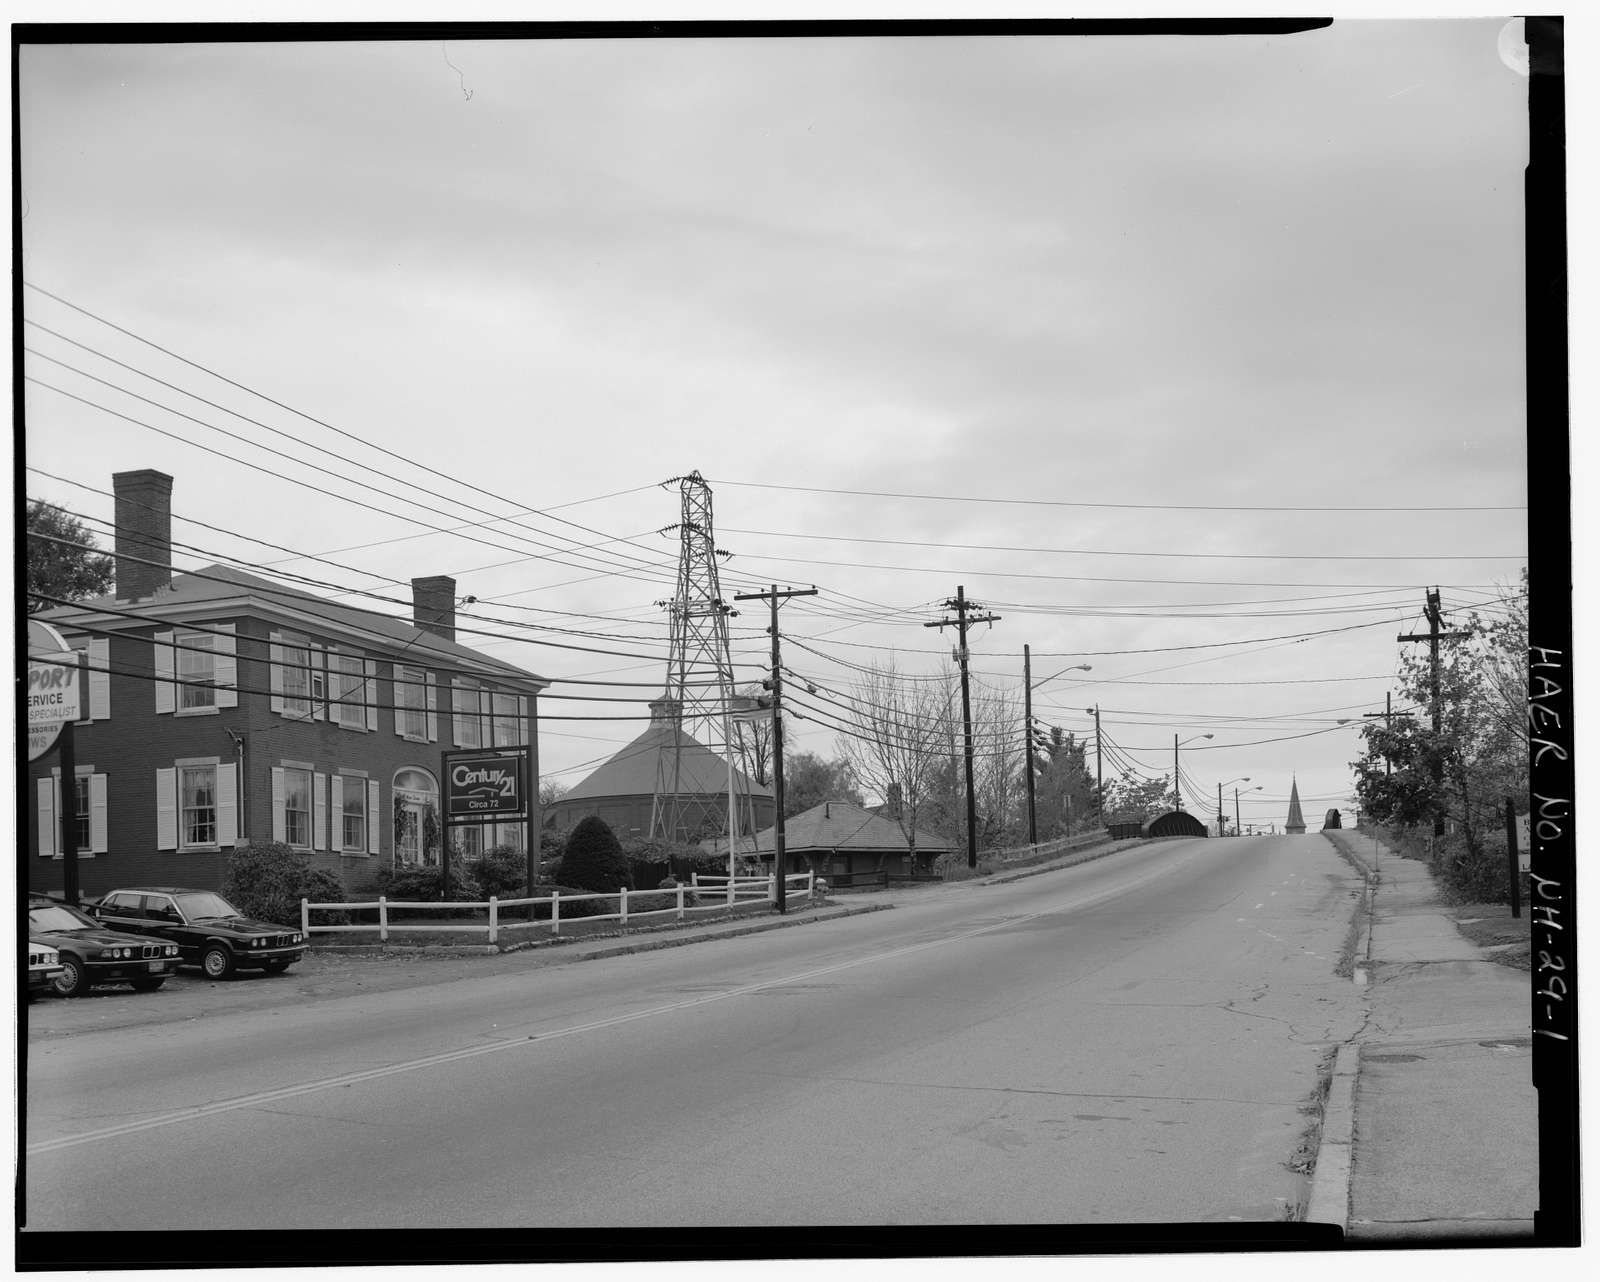 Water Street Bridge, Spanning Boston & Maine Railroad tracks at Water Street (U.S. Route 3), Concord, Merrimack County, NH